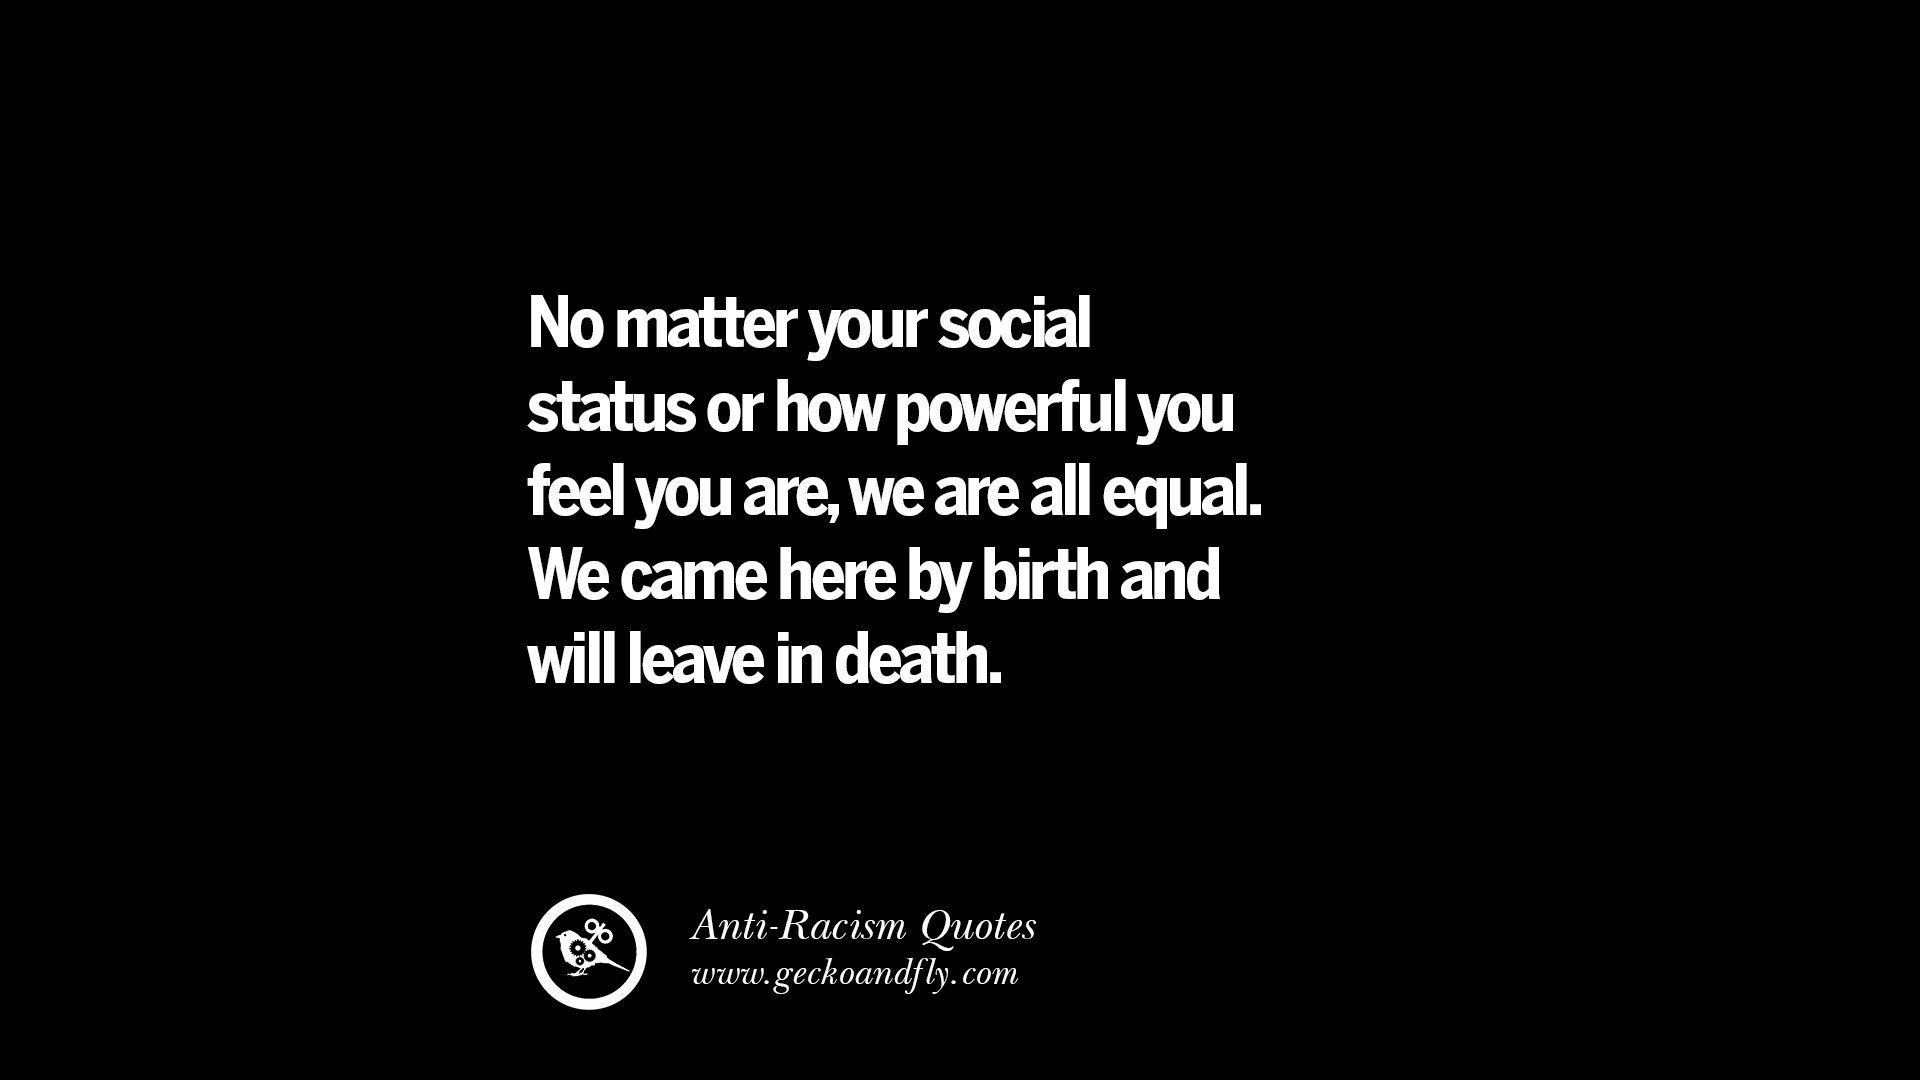 No matter your social status or how powerful you feel you are we are all equal we came here by birth and will leave in death